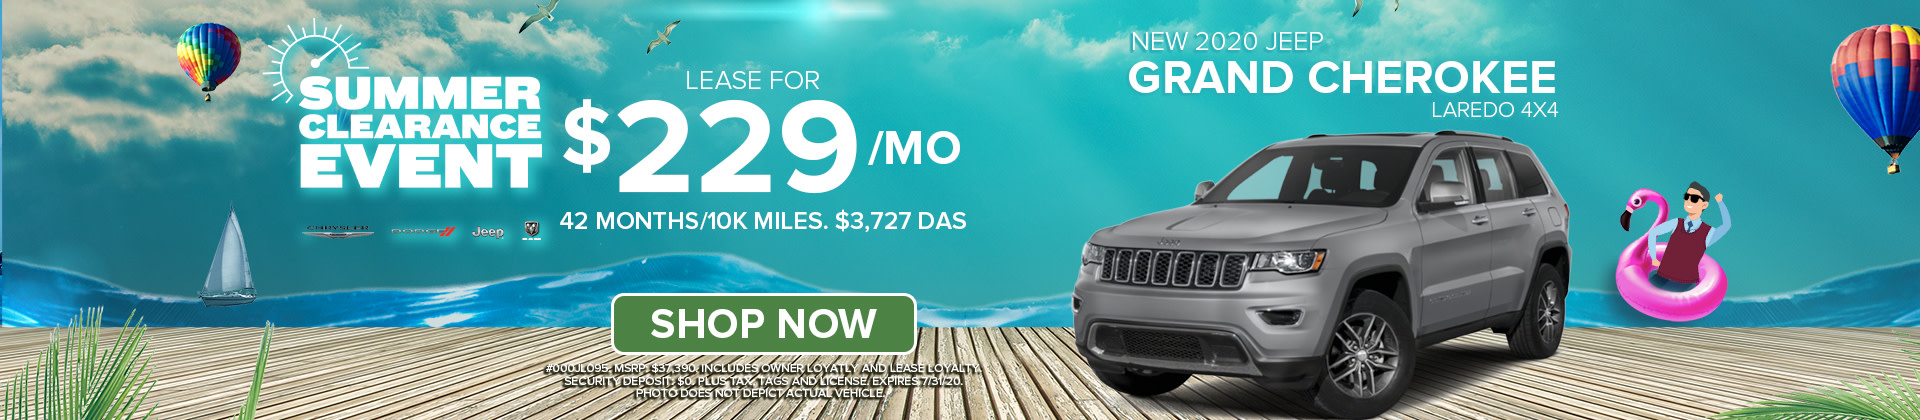 Lease a 2020 Jeep Grand Cherokee at Norristown CDJR